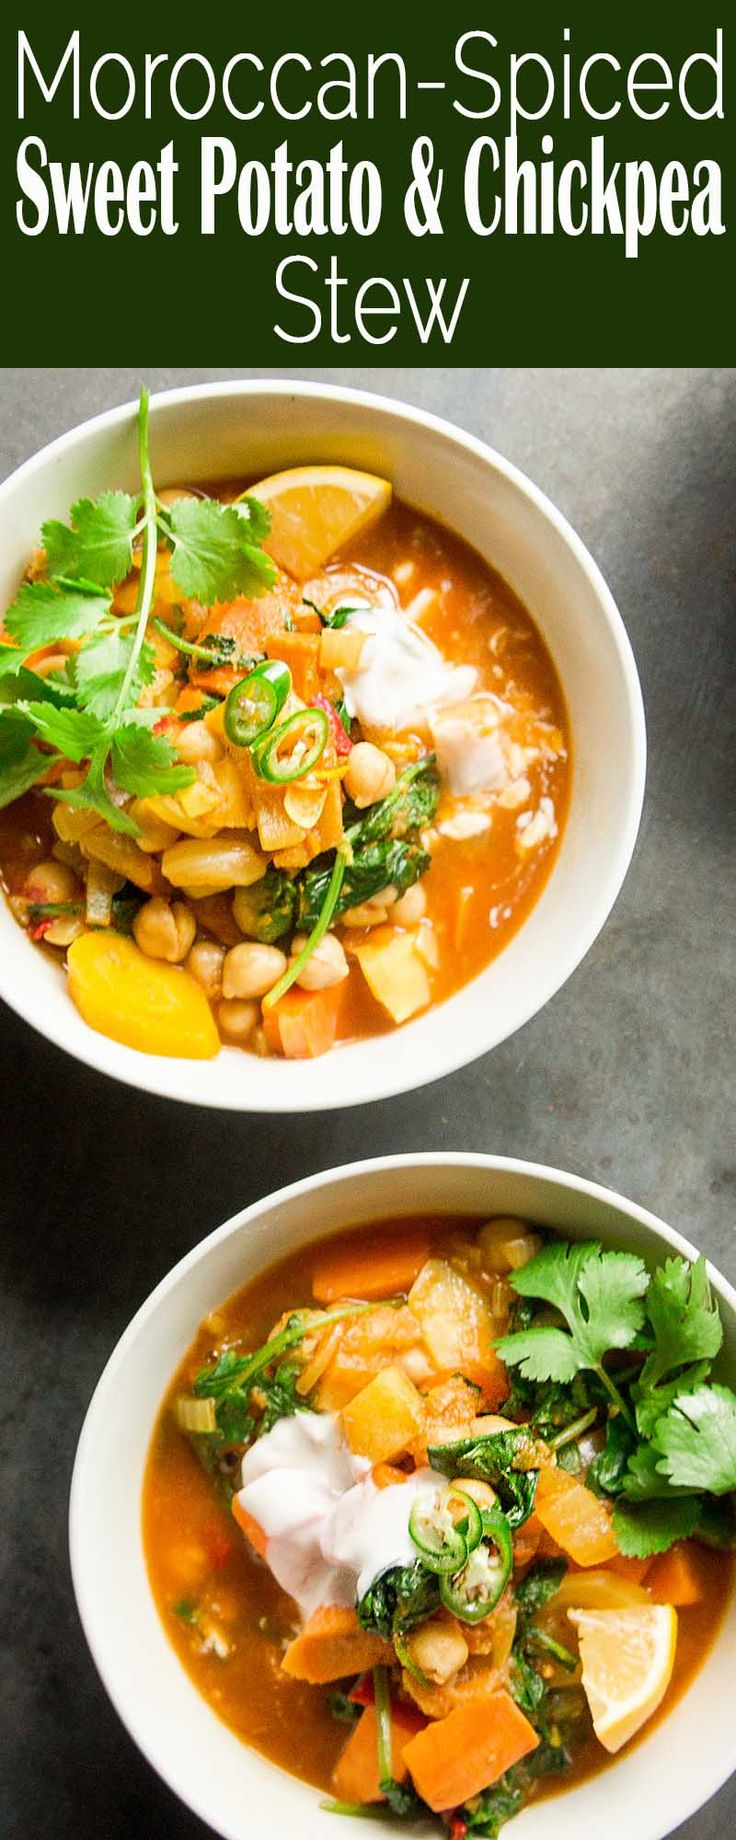 Moroccan-spiced Vegetable and Chickpea Stew! 30-min cook time, vegan, gluten-free, seasoned with ras el hanout spice mix (cumin, coriander, ginger, and cinnamon).